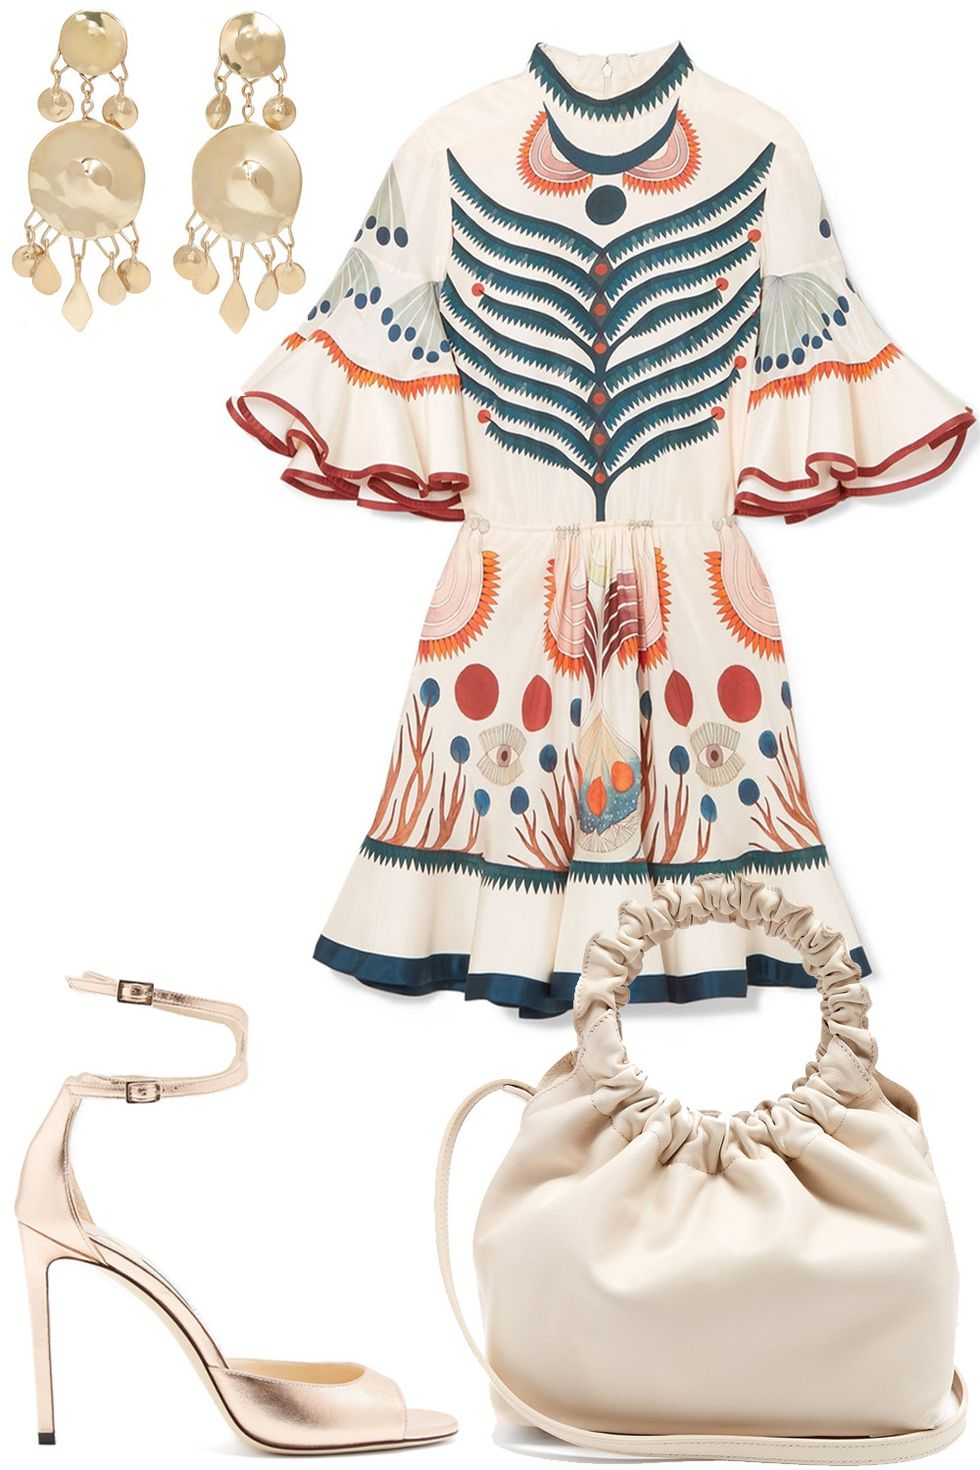 what-to-wear-for-a-summer-wedding-guest-outfit-white-dress-peasant-white-bag-earrings-dinner.jpg